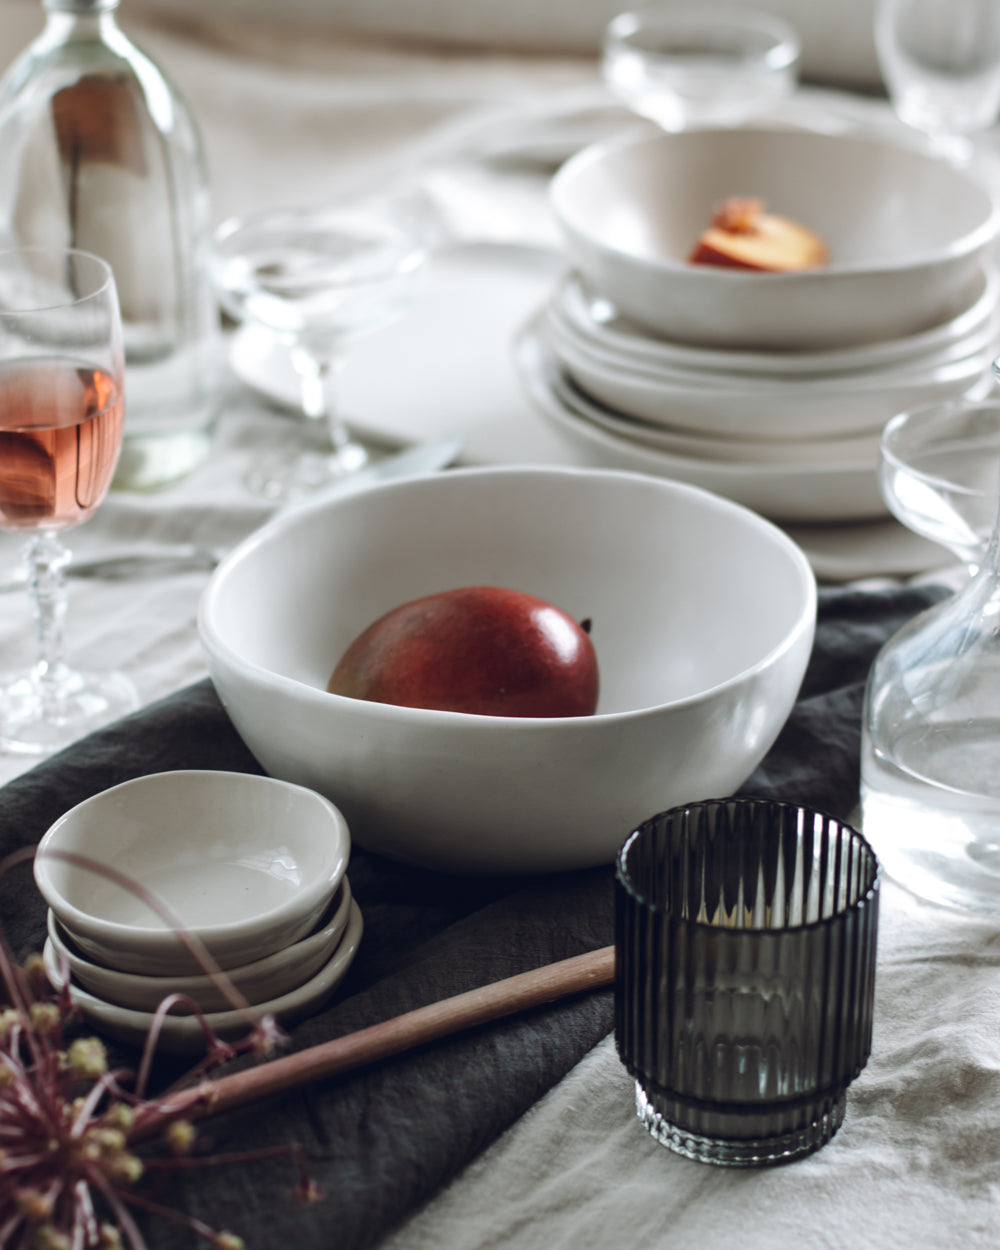 Festive table set with Winterwares ceramics